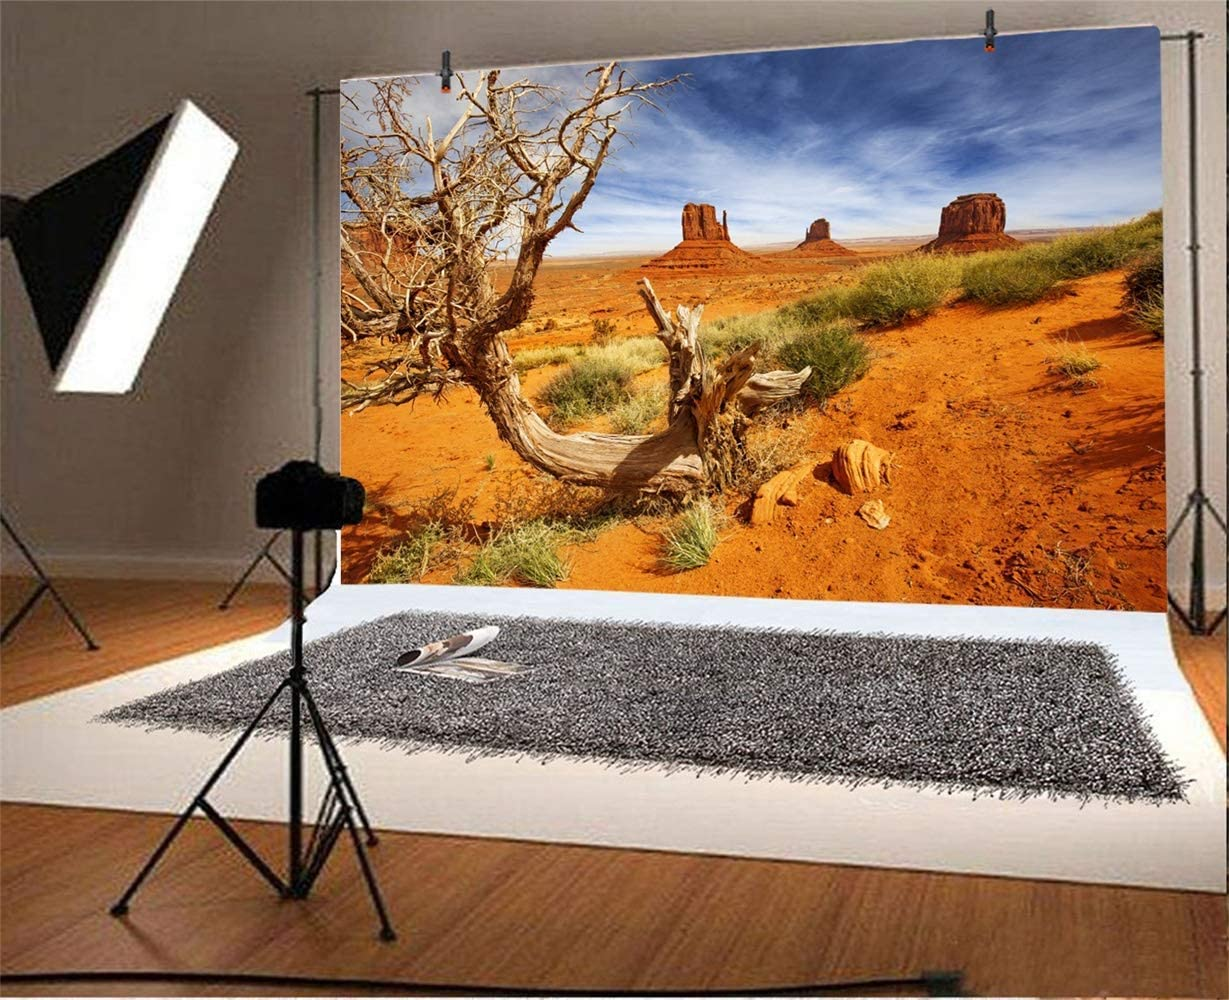 10x6.5ft Dusk Gobi Desert Decayed Tree Grass Weathered Mountains Scenic Background for Photography Desolate Place Nature Scenery Backdrop Landscape Wallpaper Studio Props